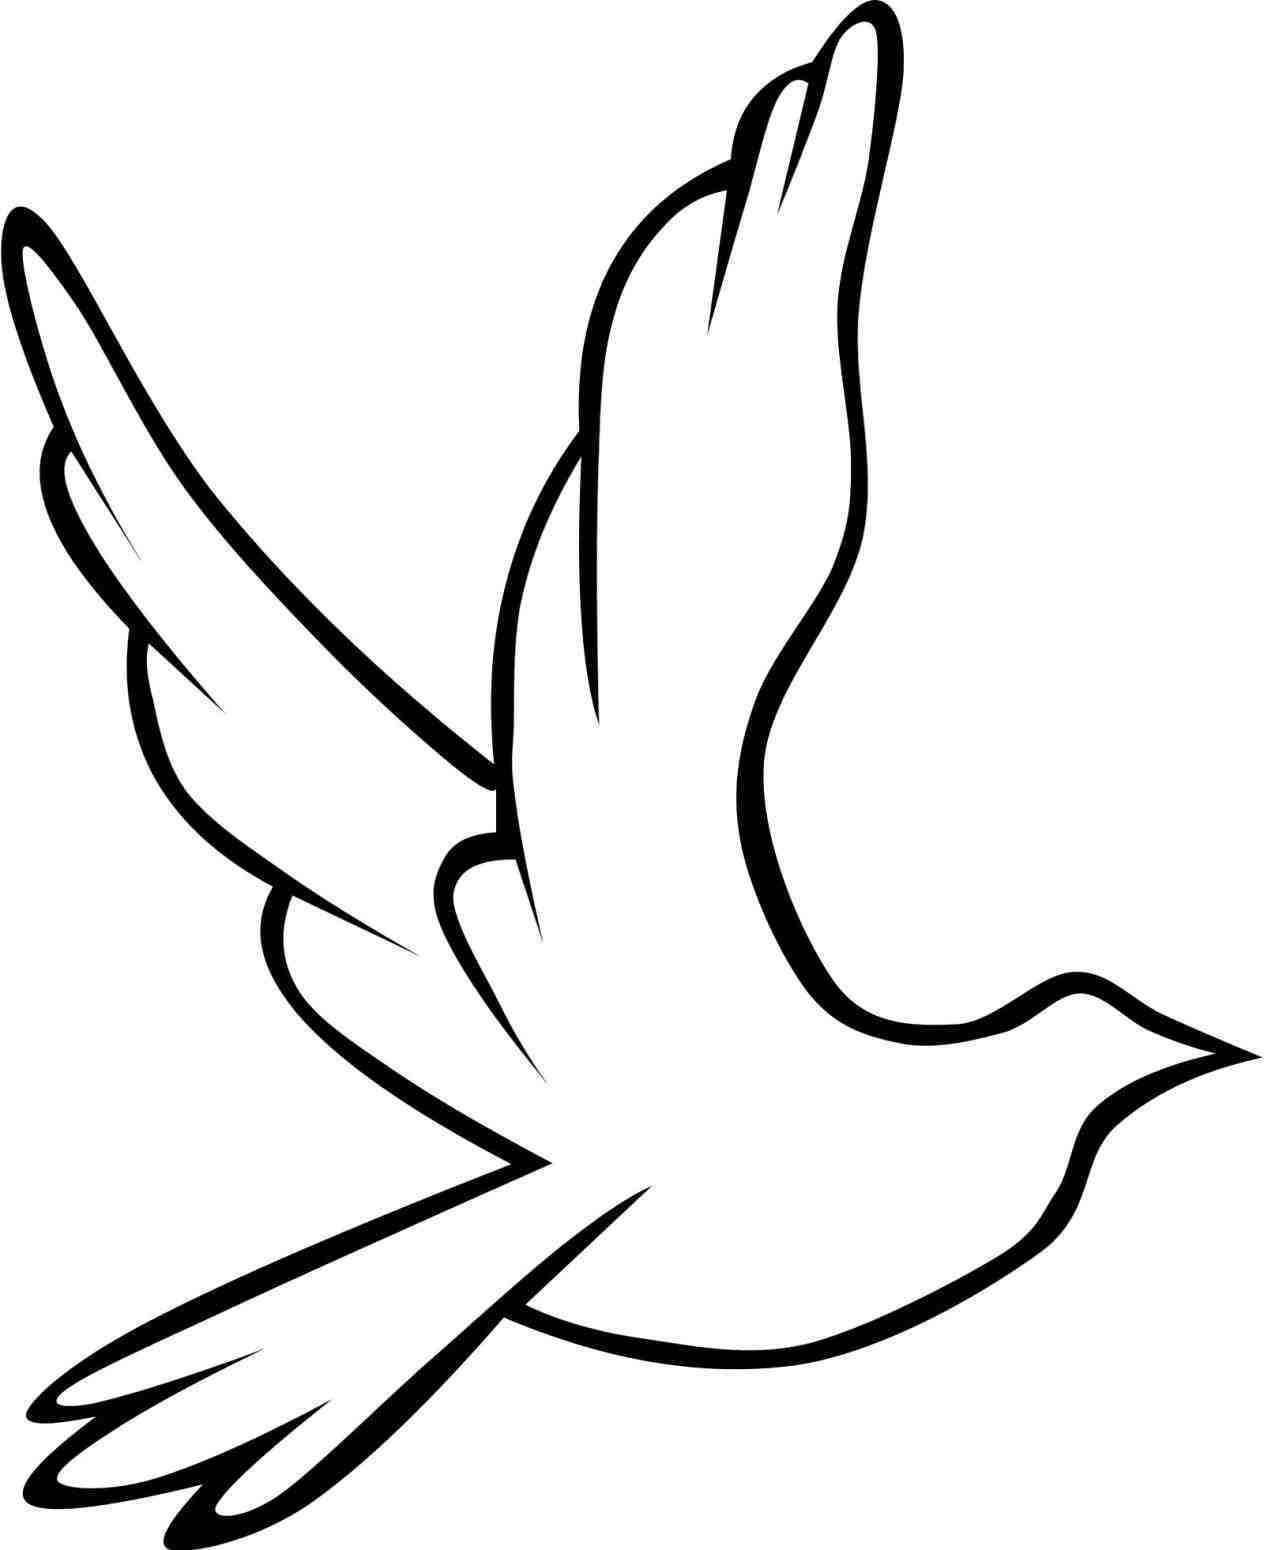 1264x1550 Drawn Turtle Dove Template Turtle Dove Holy Spirit Pencil And